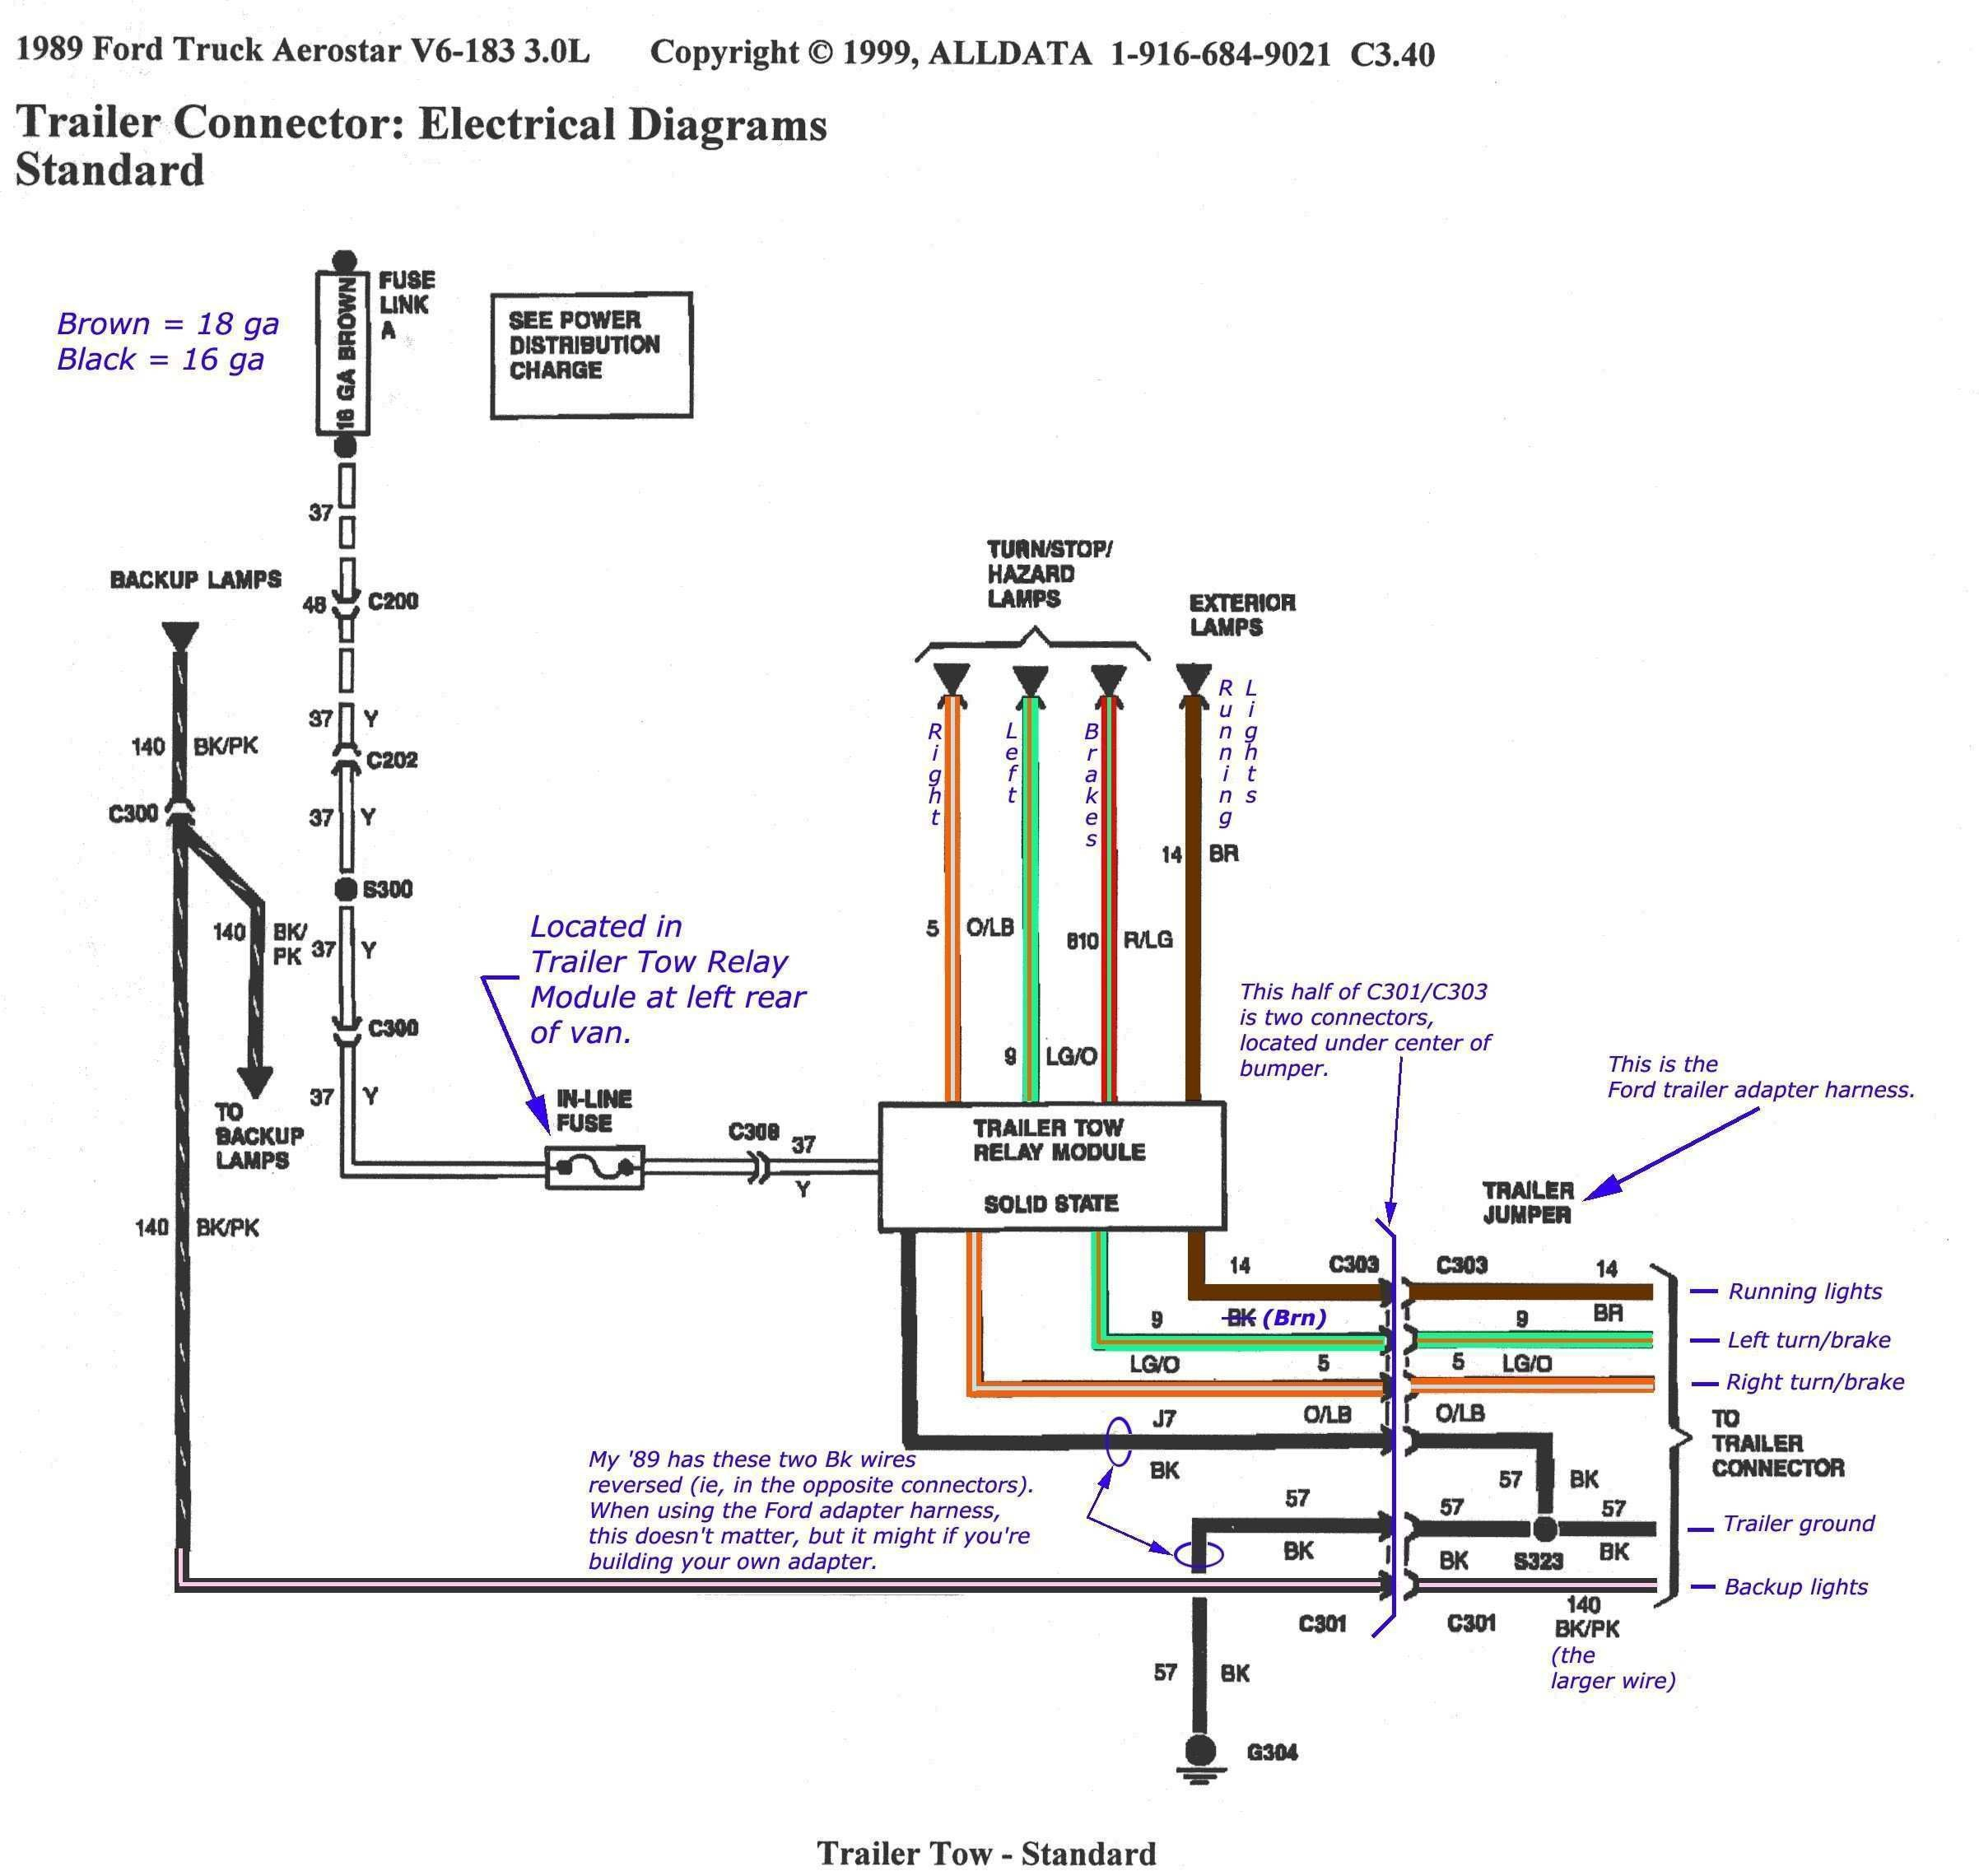 7 Way Trailer Plug Wiring Diagram Large | Wiring Library - Wiring Diagram For Big Tex Trailer